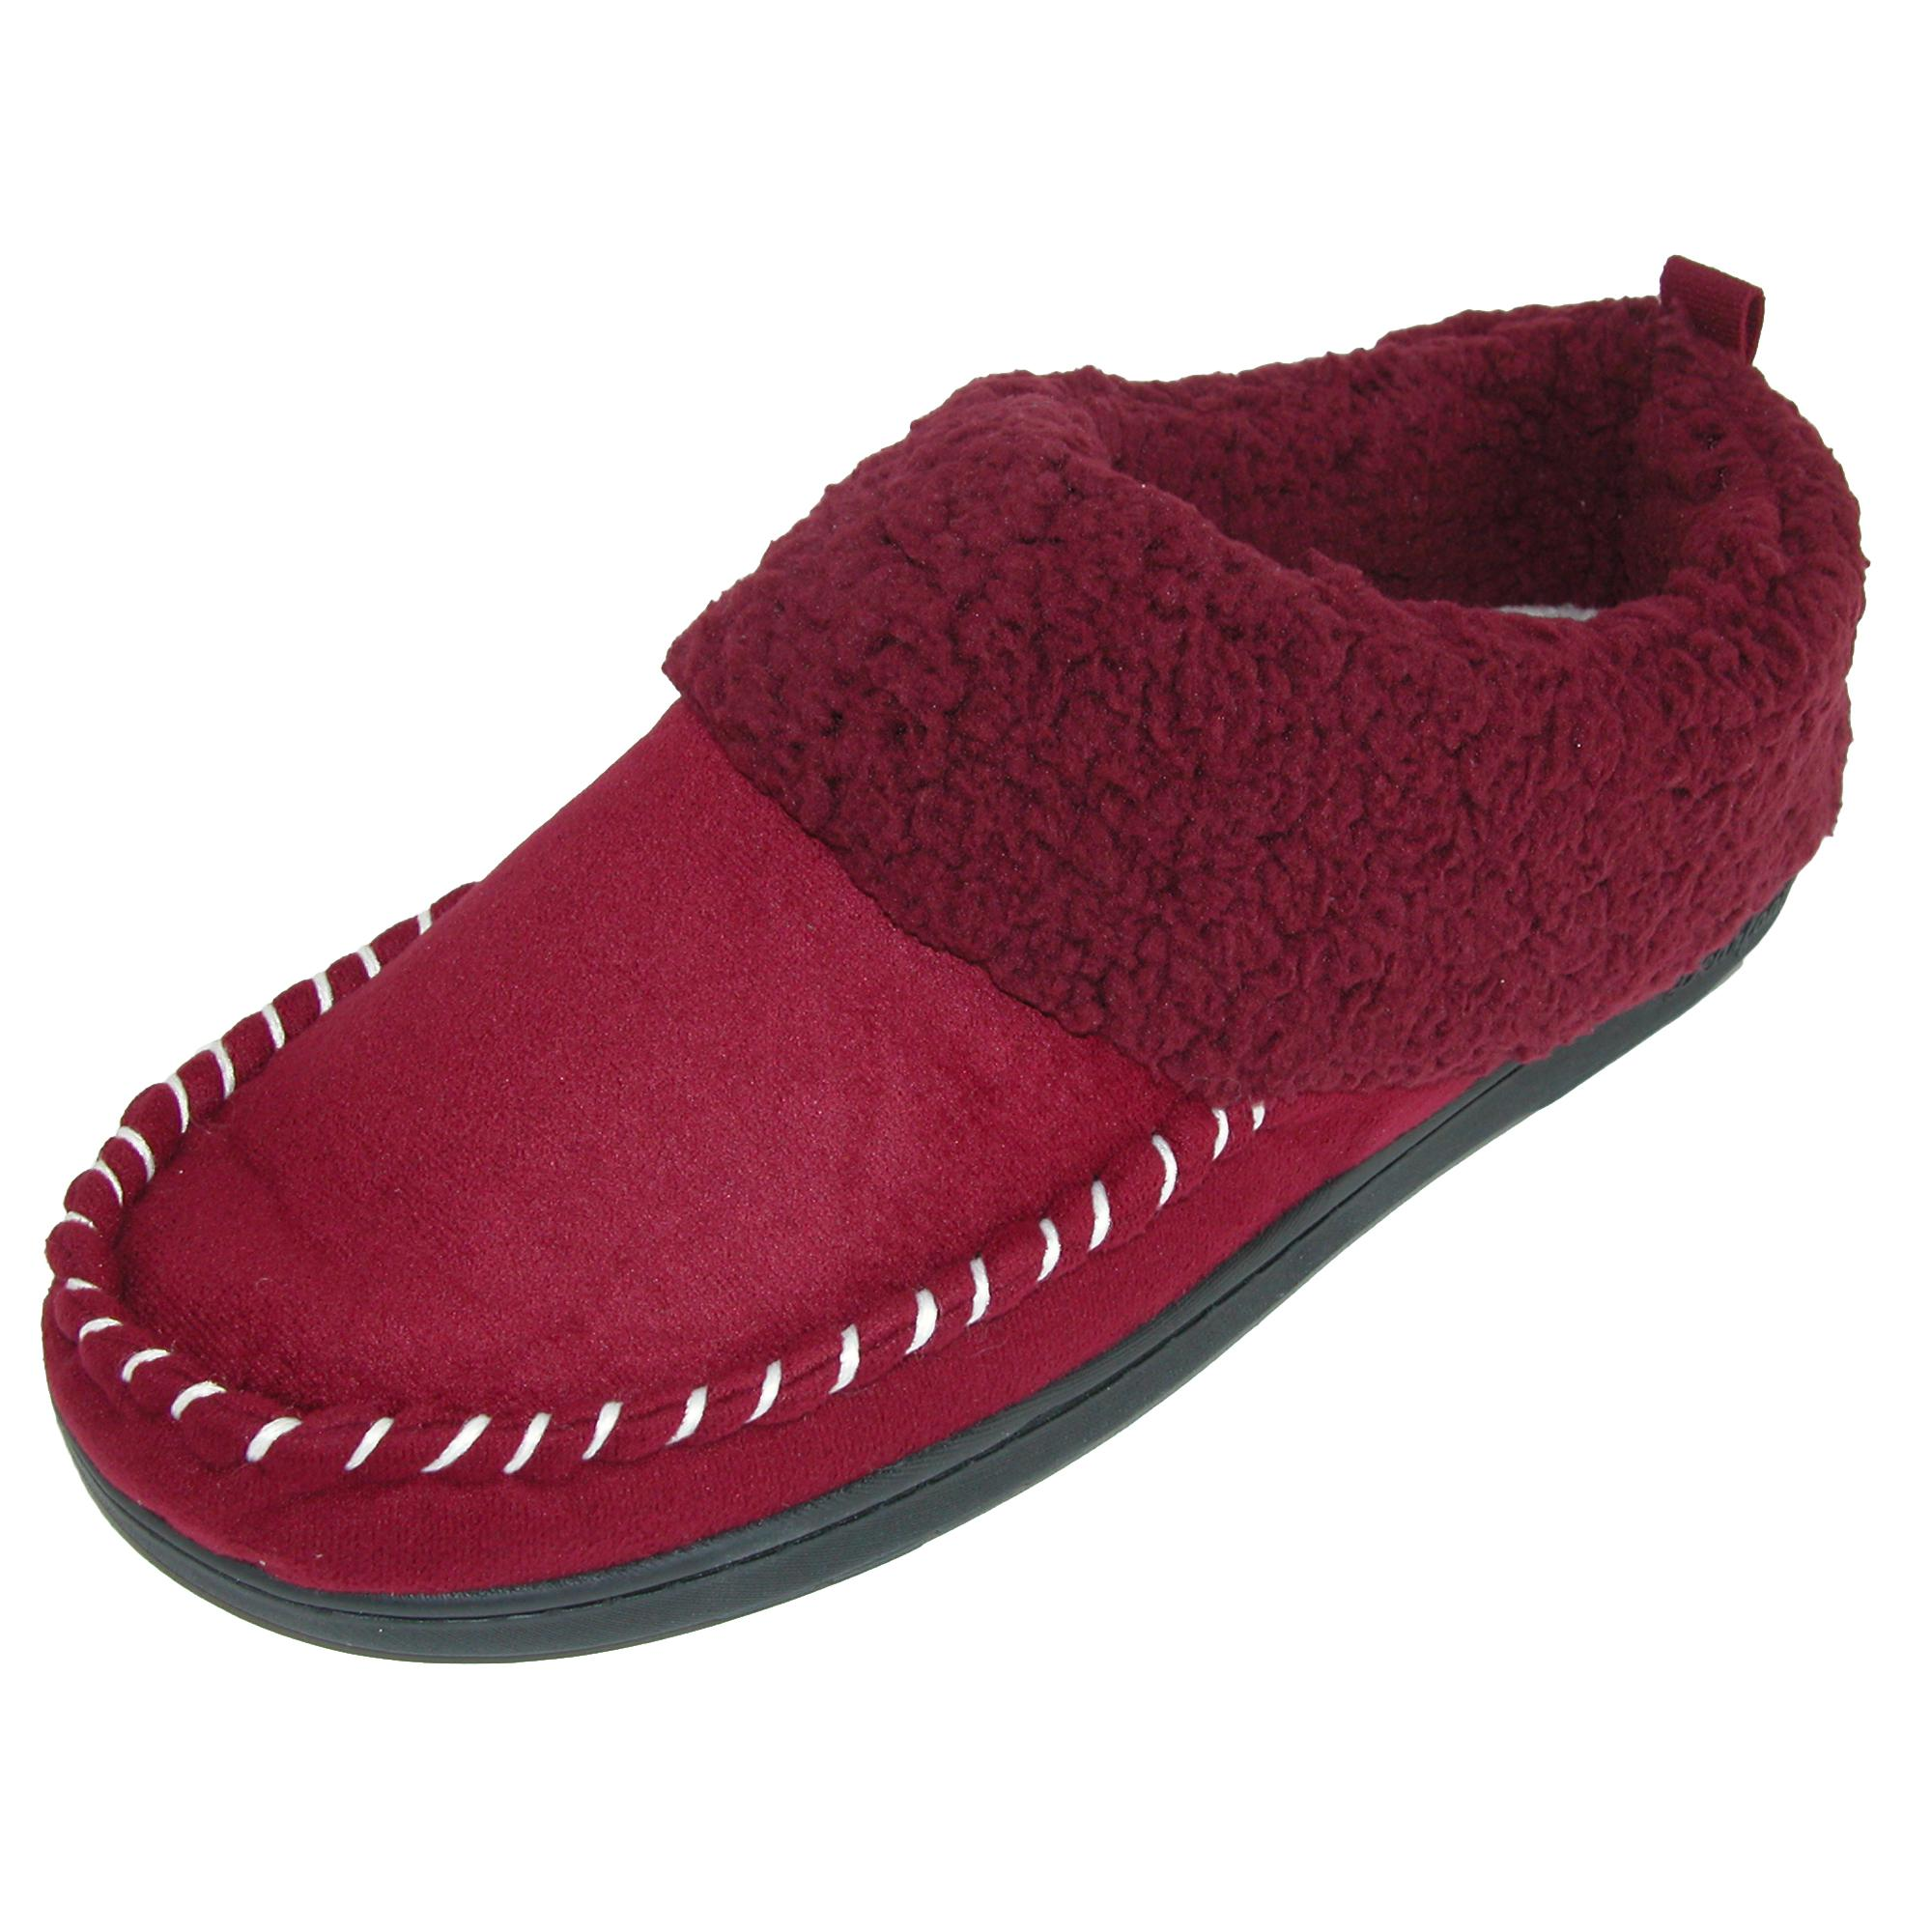 New Dearfoams Women's Microsuede Clog Slipper with Microstitch Detail;  Picture 2 of 5; Picture 3 of 5 ...